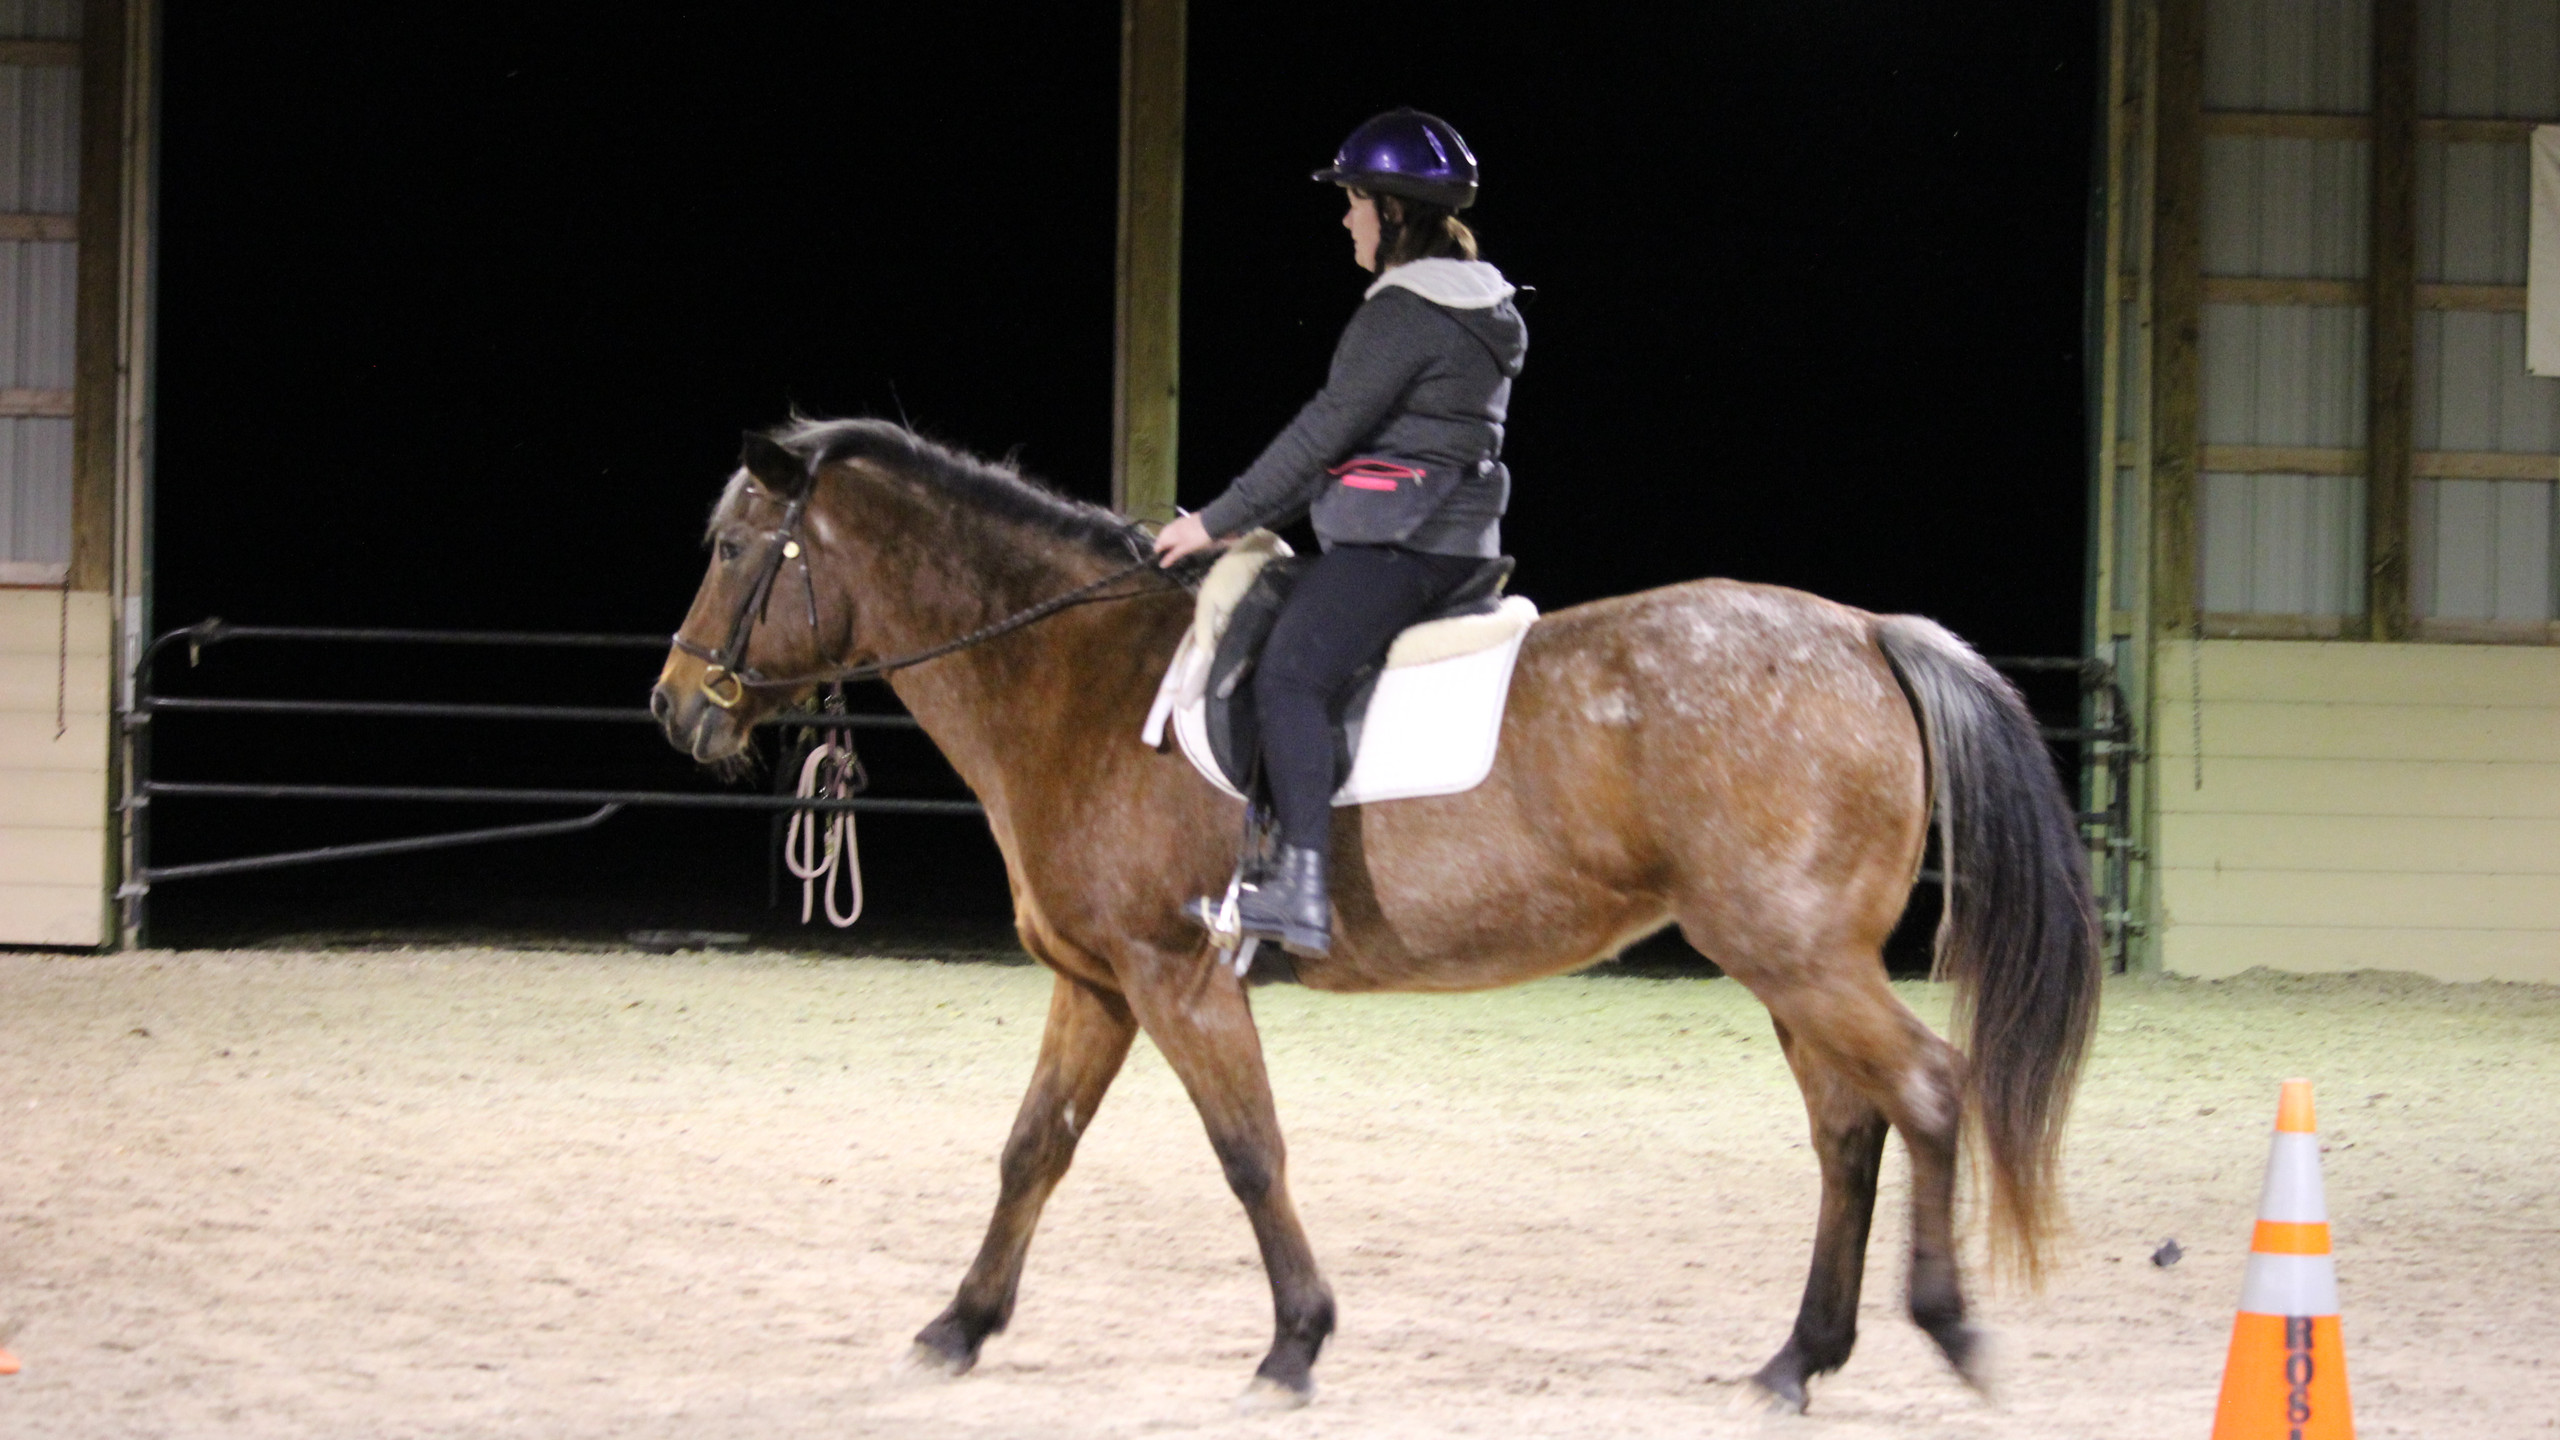 Katelyn on Lucy